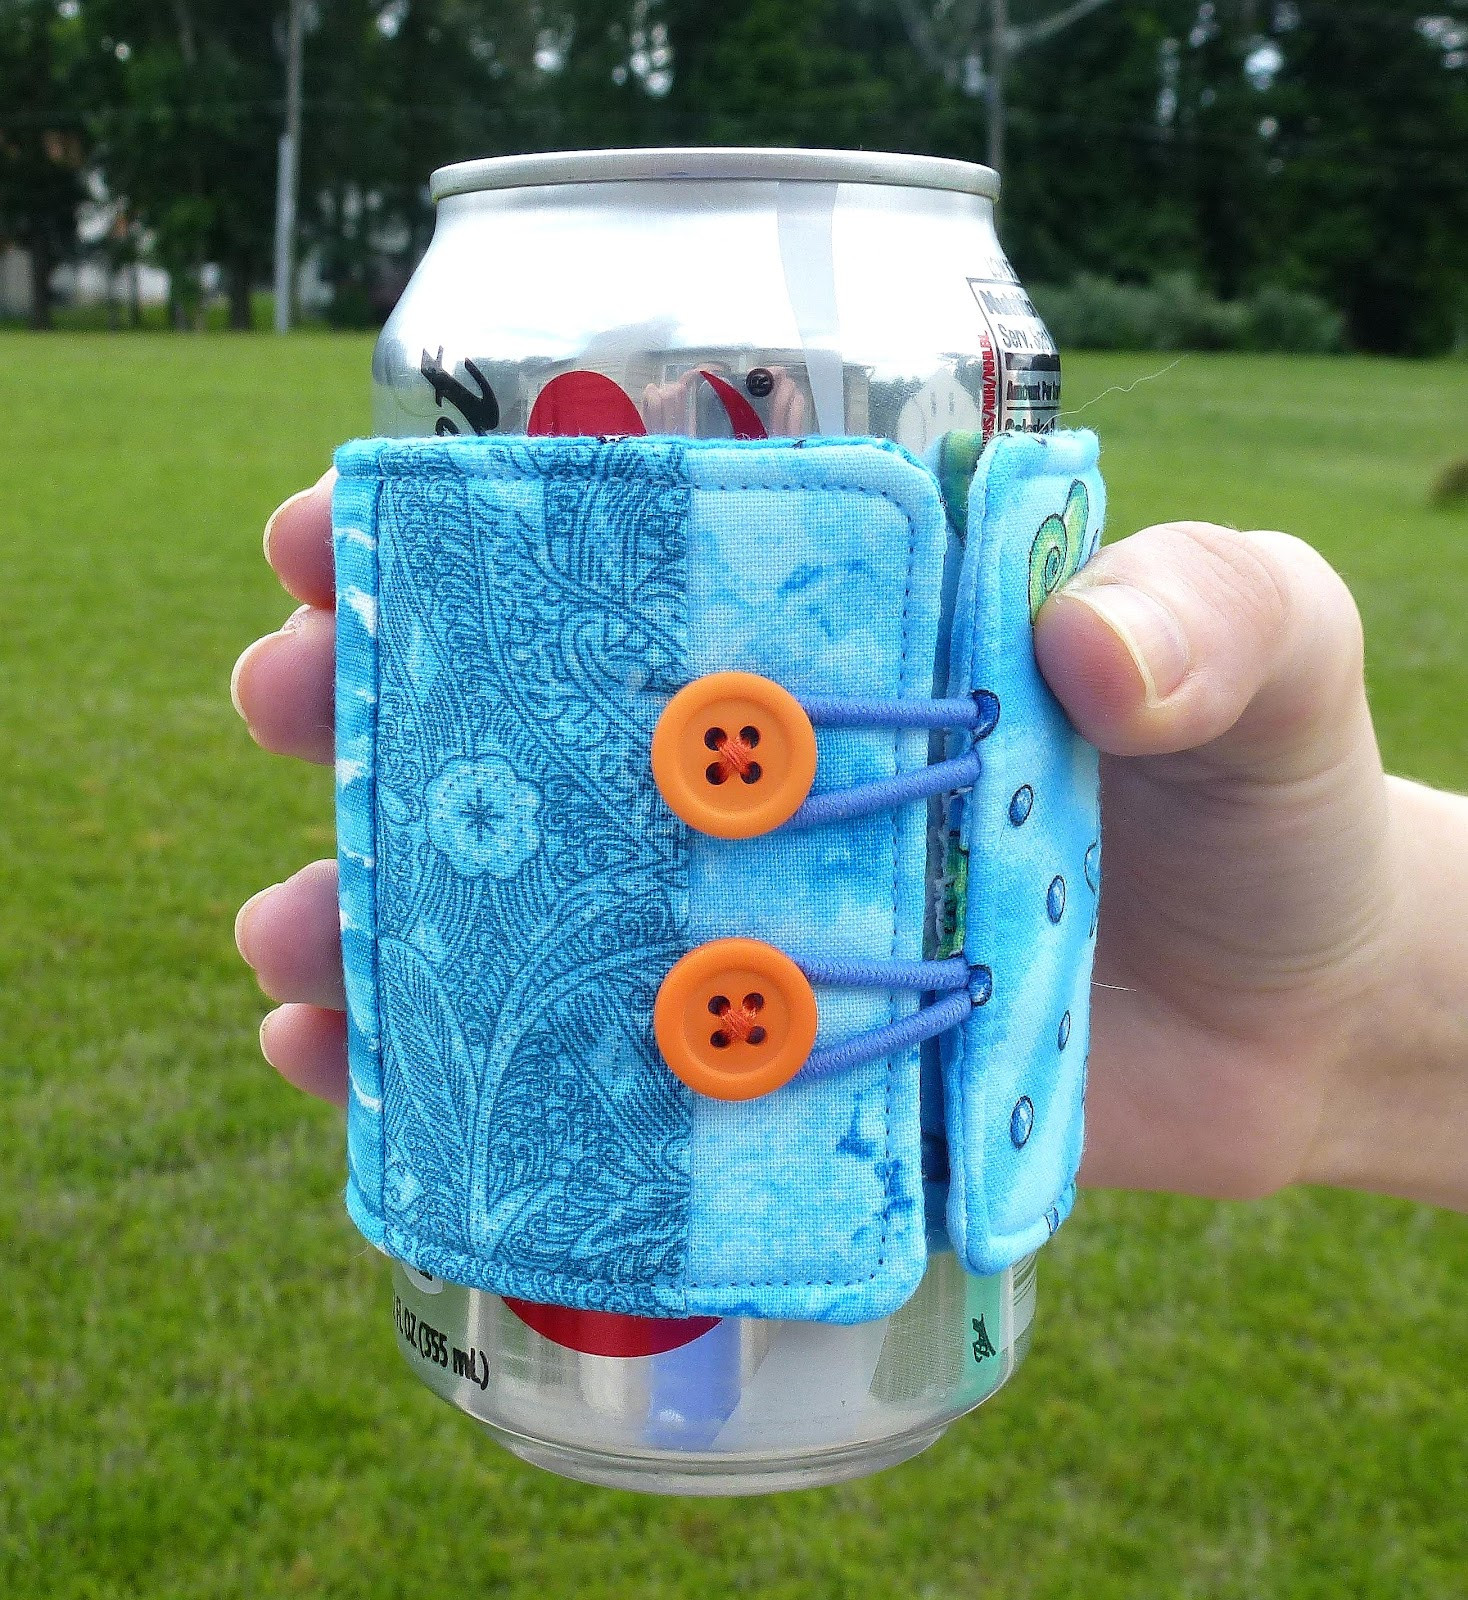 Inspirational Leslie S Art and Sew Summer Sewing soda Can Cozy Tutorial Can Cozy Of Wonderful 48 Pictures Can Cozy